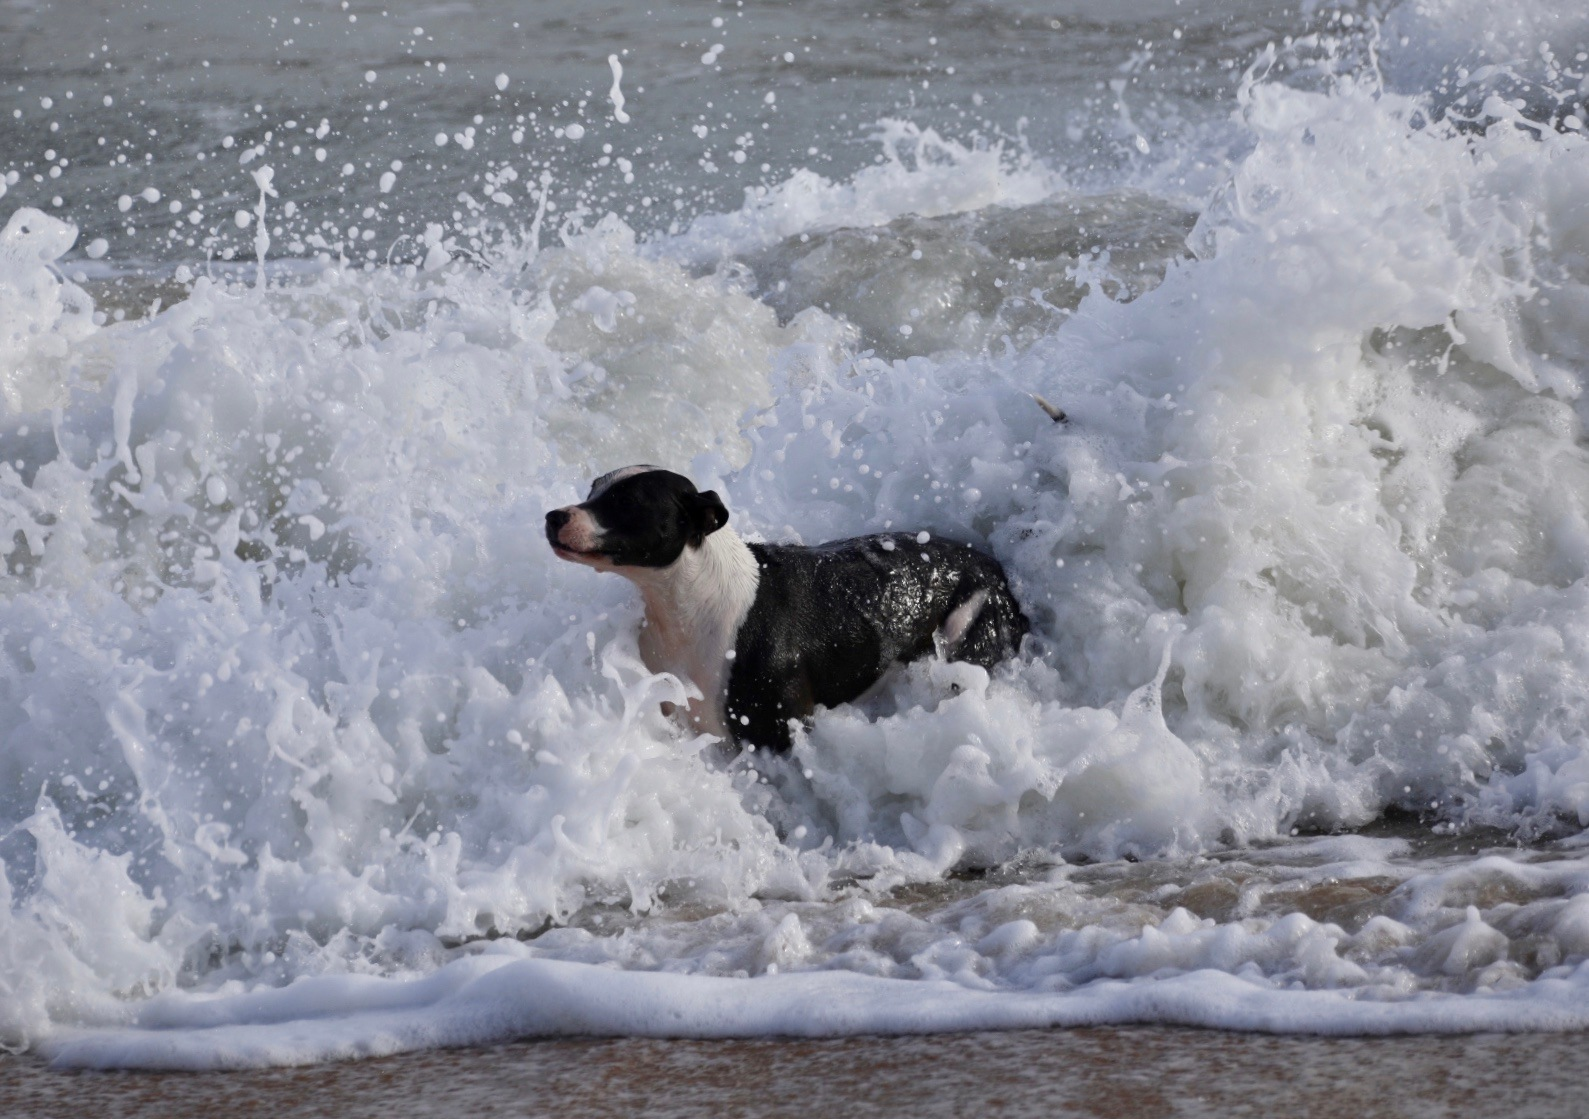 The dog that defies the waves  by Francisco Sá da Bandeira